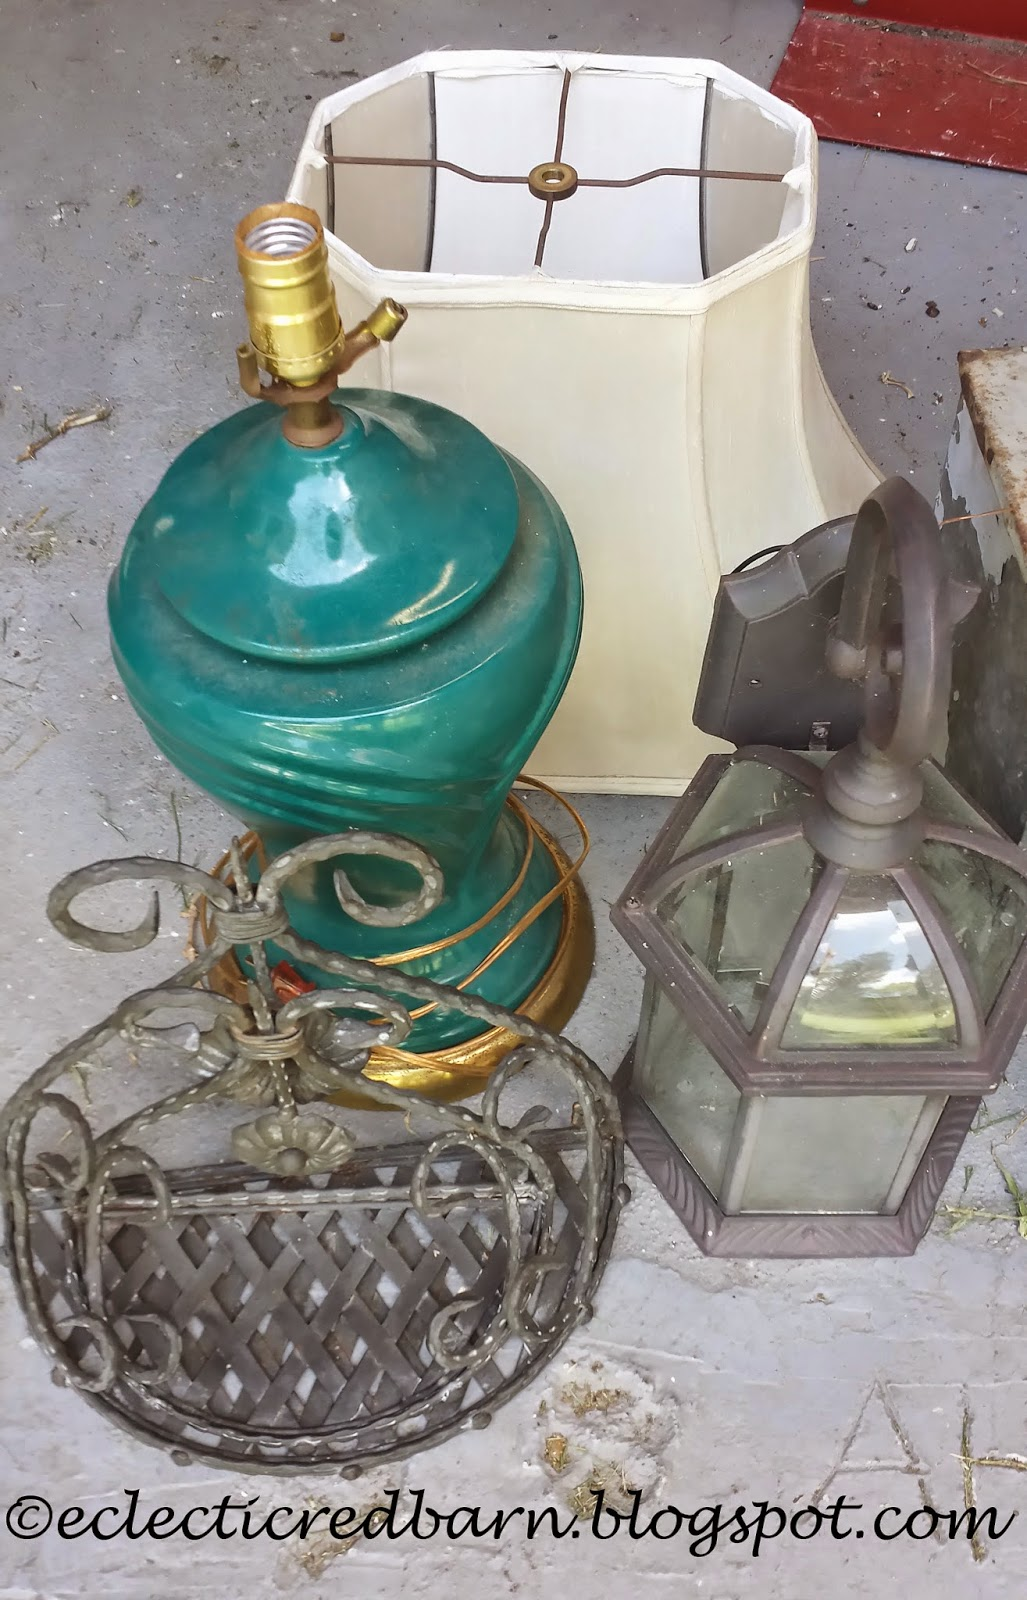 Eclectic Red Barn: Garage Sale Treasures